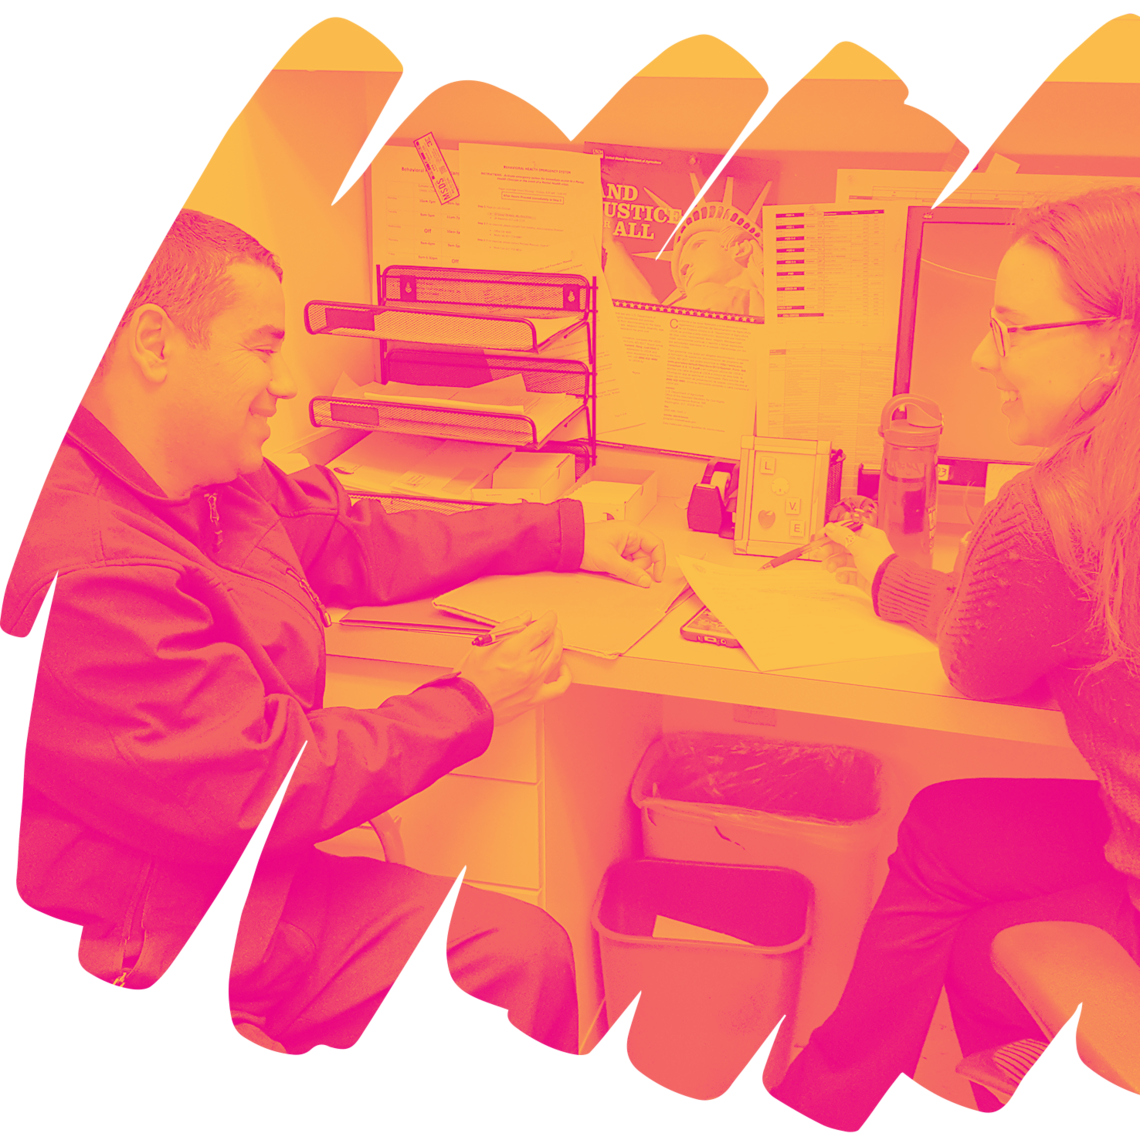 Two people sitting at a desk with papers and a computer on it. They are looking down at a piece of paper, one of them holding a pen.